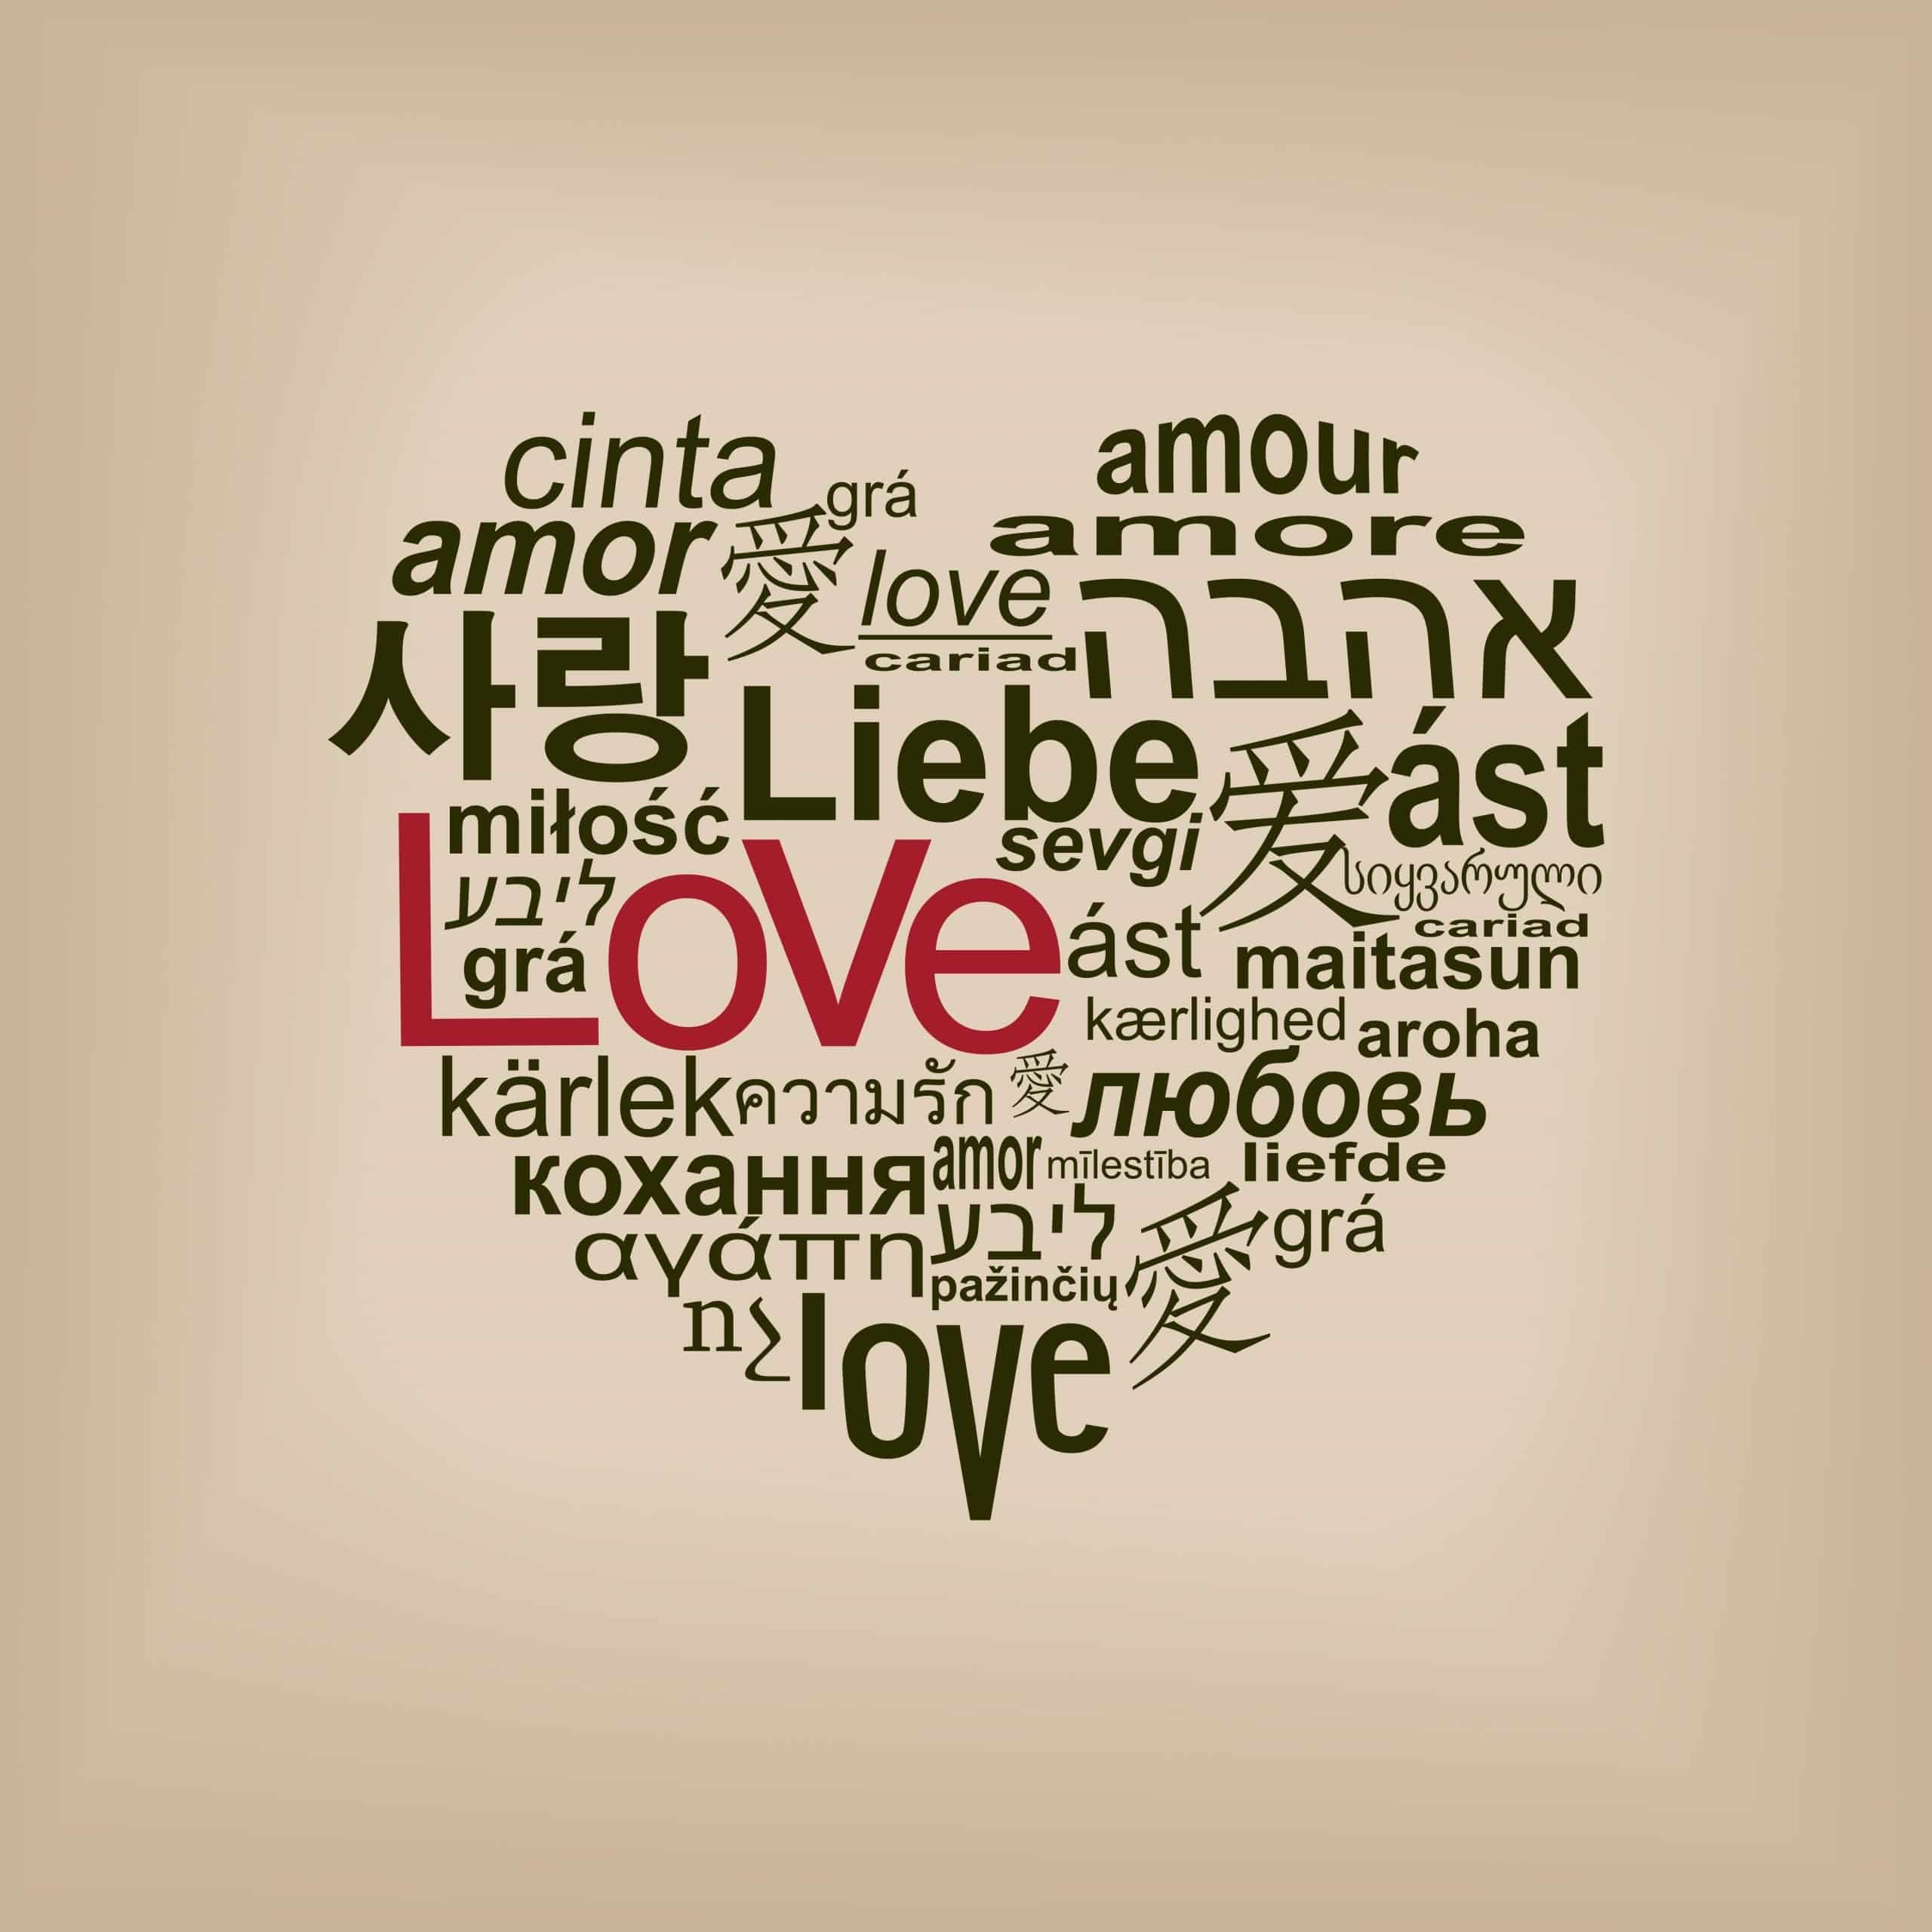 Heart shaped graphic of the word 'Love' in many different languages to illustrate God's language of love.